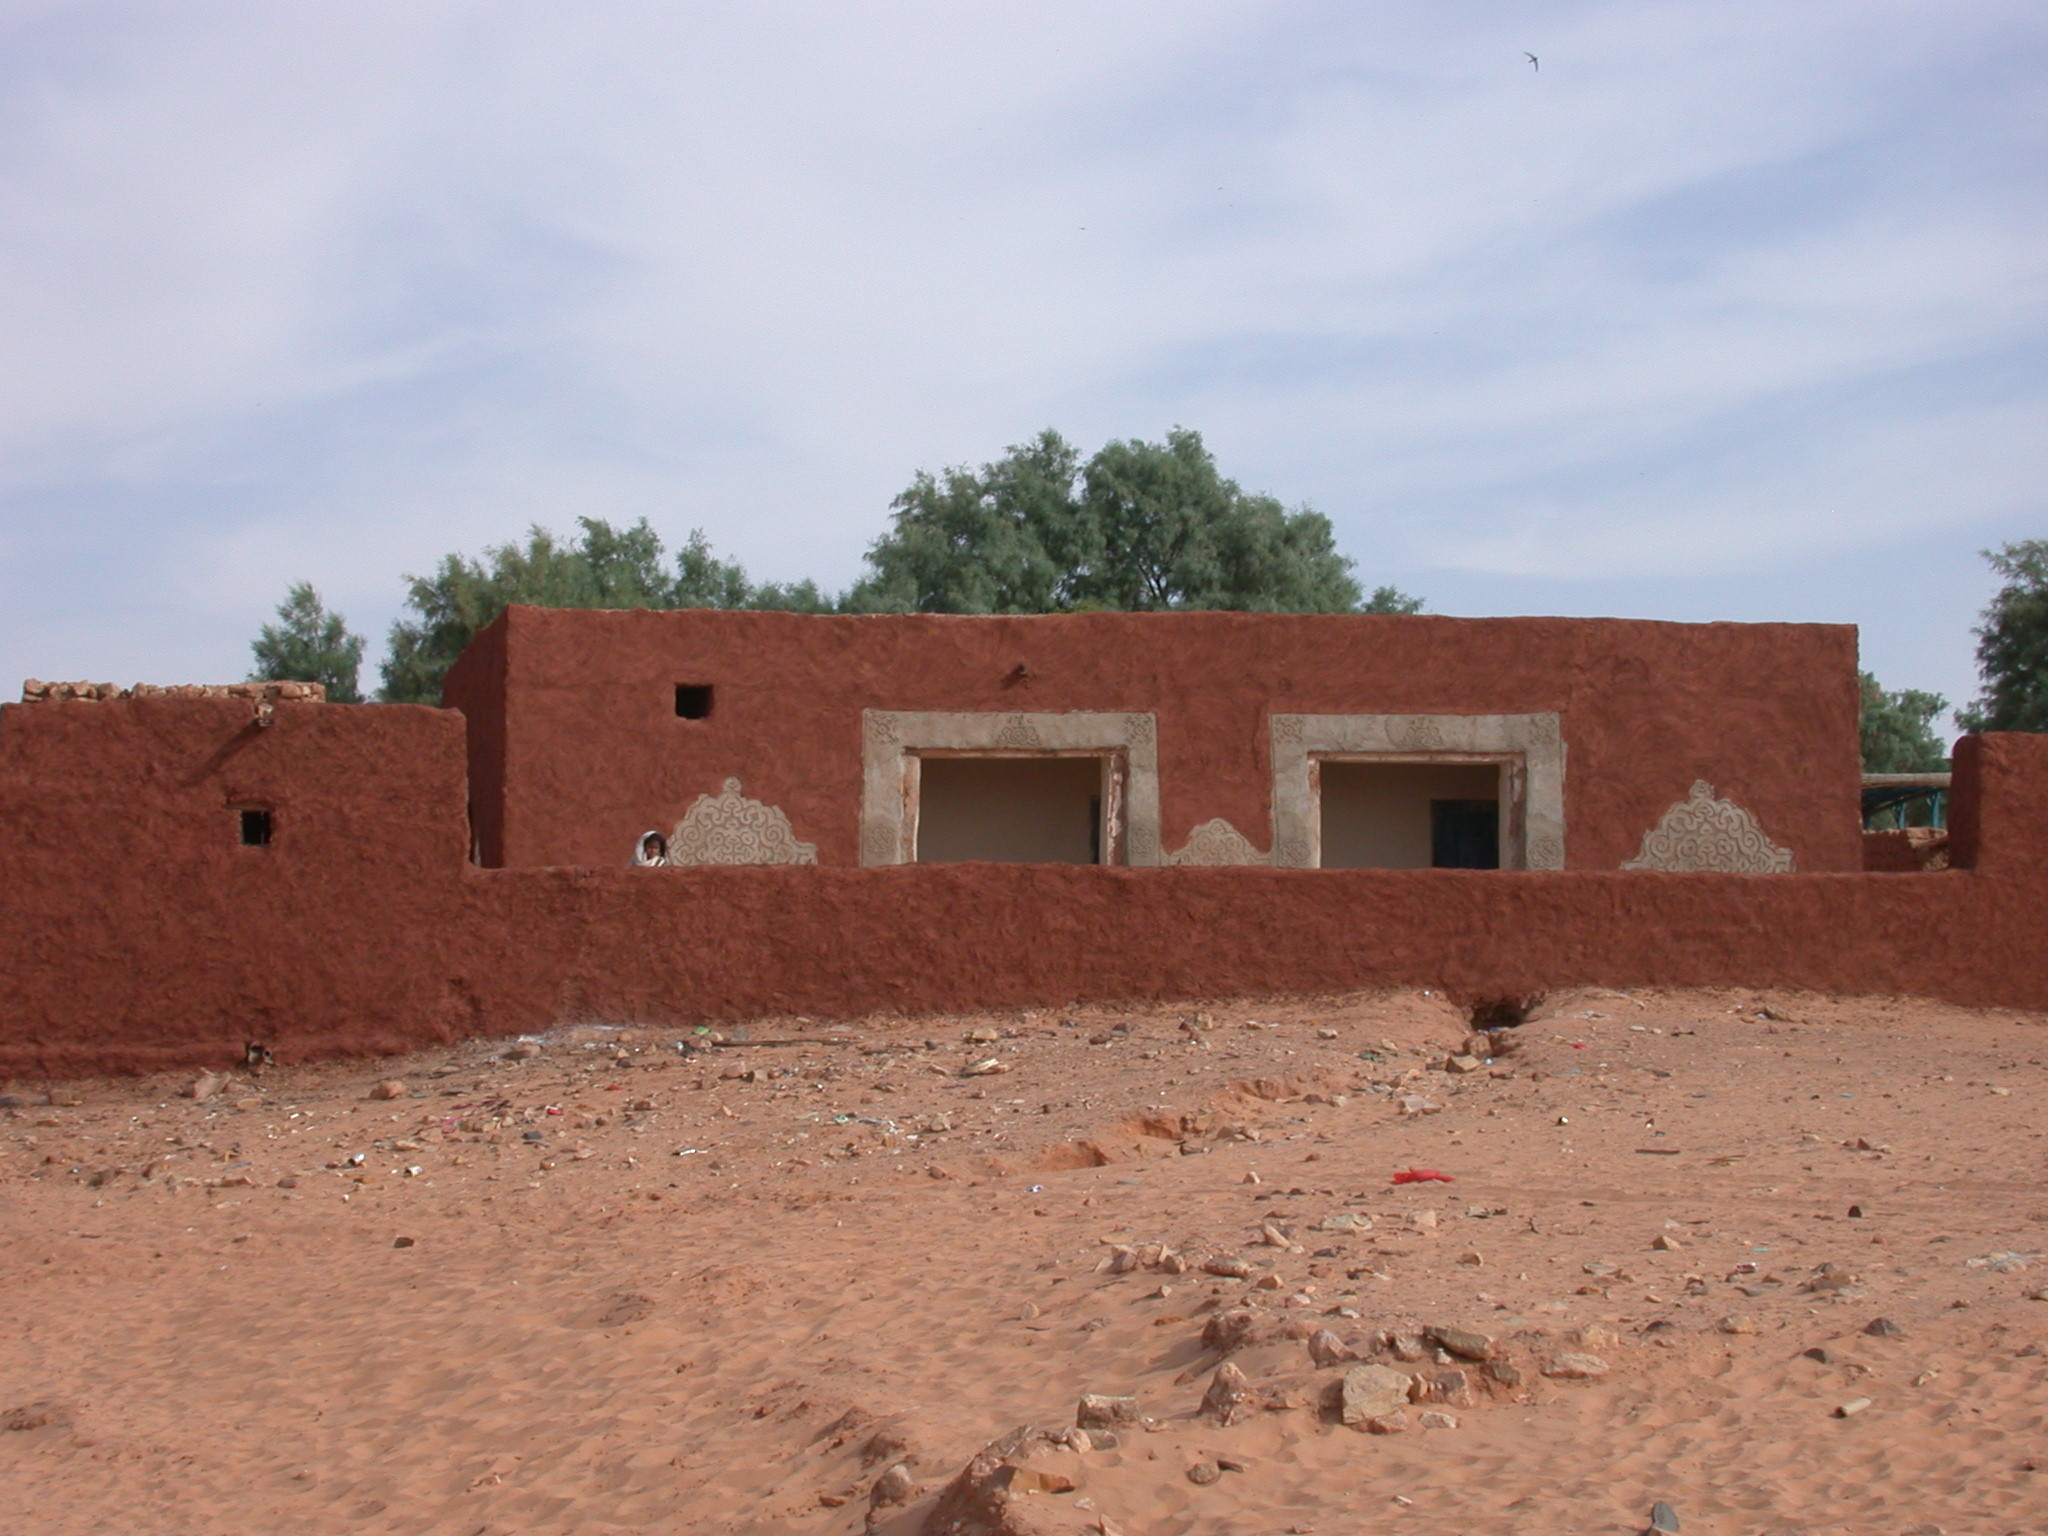 Hotel in Ancient City of Oulata, Mauritania